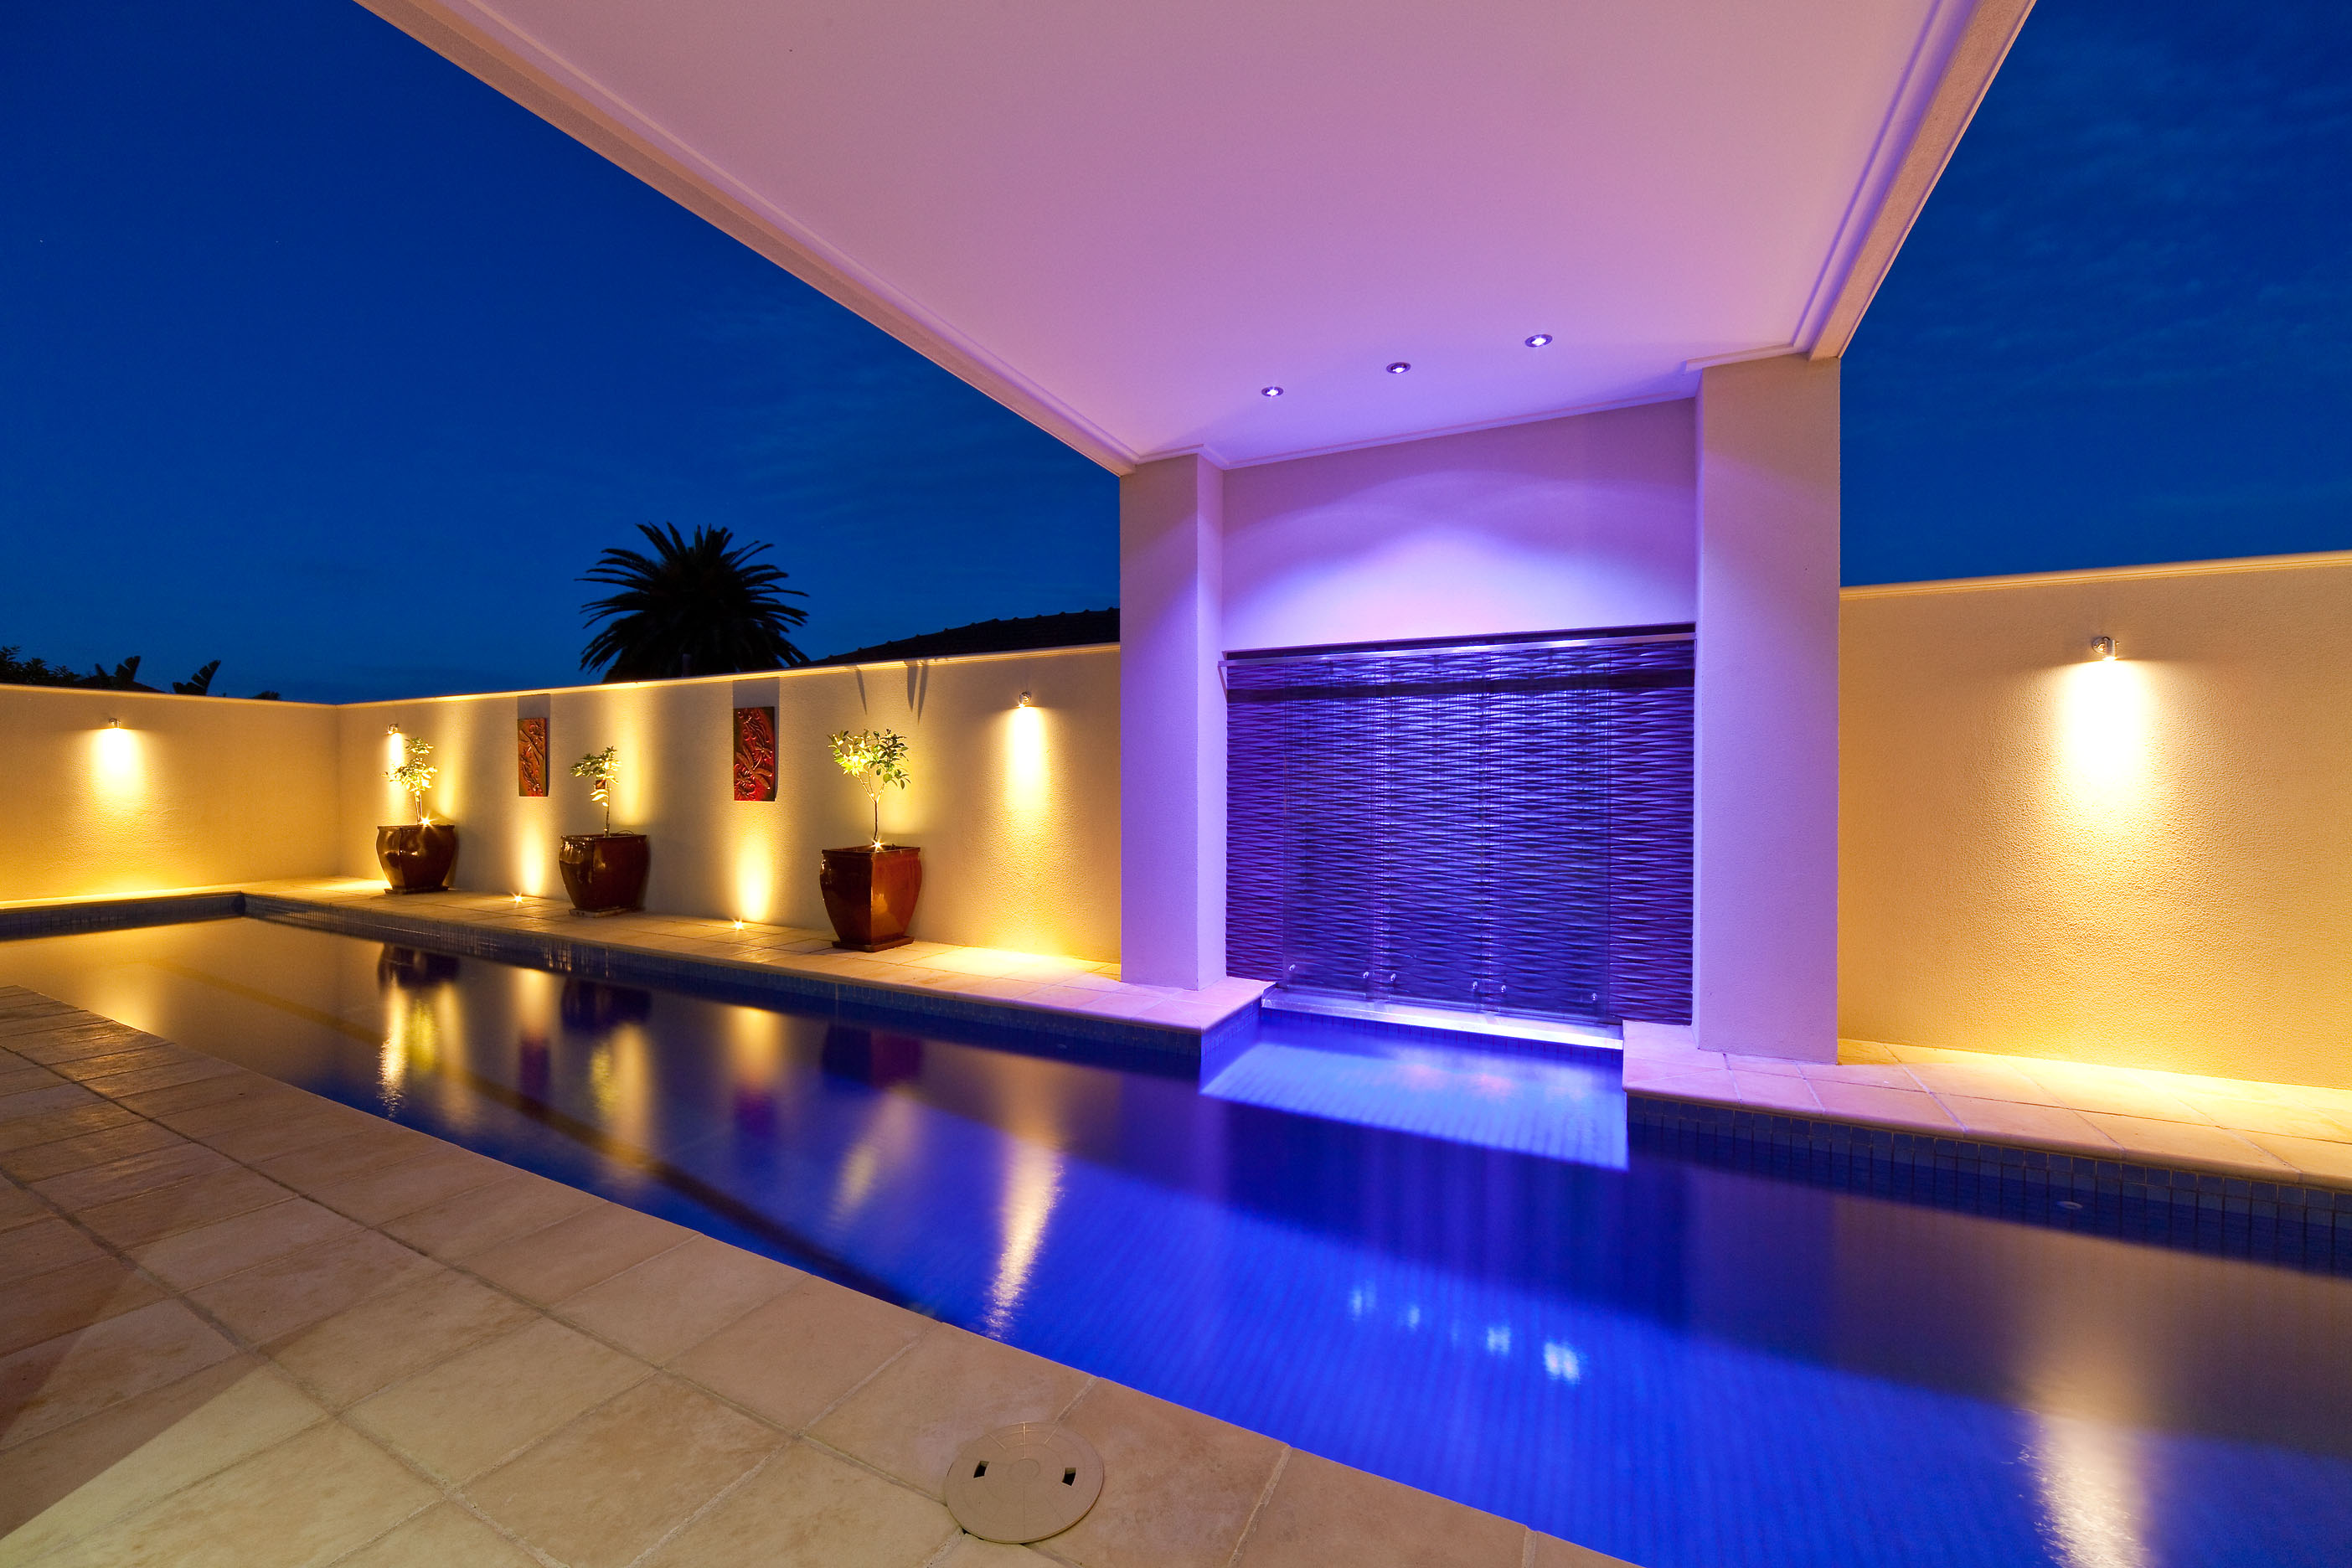 Portico with Outdoor Lighting and Water Feature